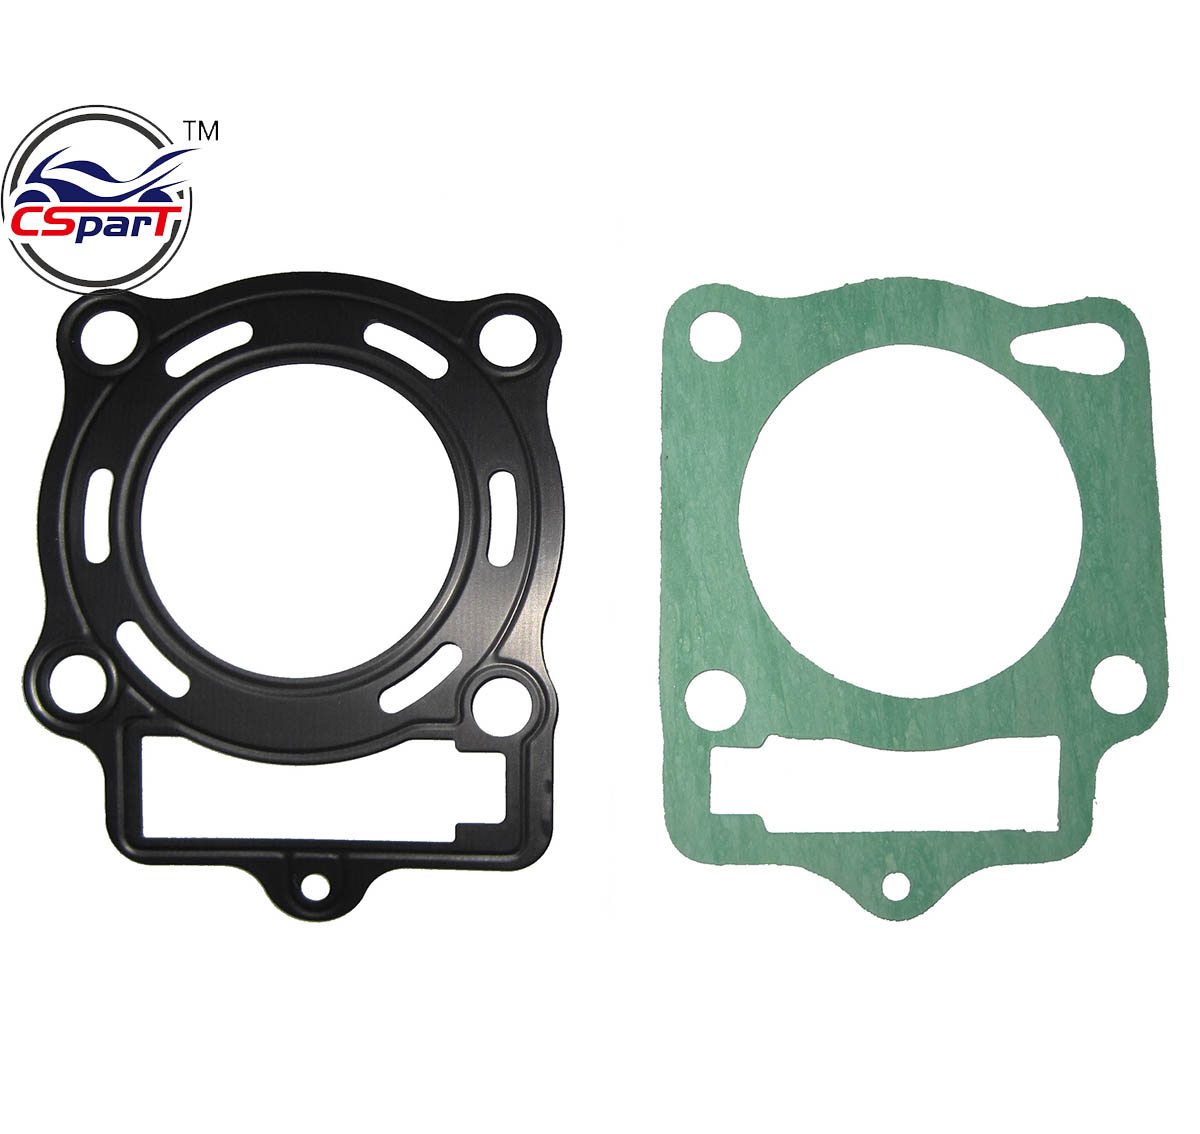 70MM  Cylinder Gasket Kit For Loncin ZongShen Water Cooled CB250  250CC 170MM  Kaya Xmotos Apollo Tmax ATV Pit Dirt  Bike